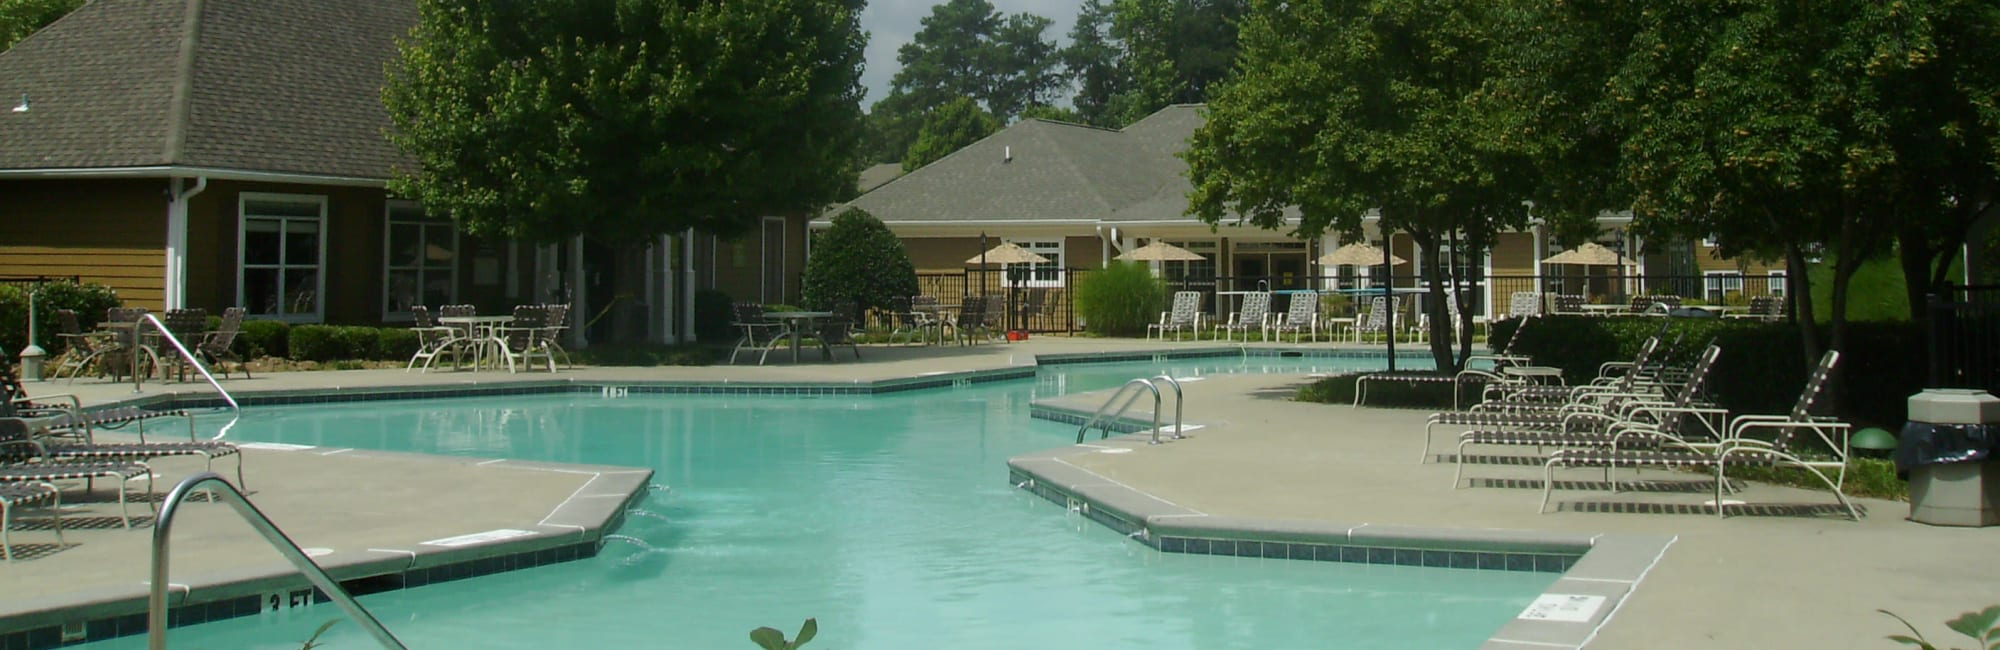 Apartments at Azalea Springs in Marietta, Georgia